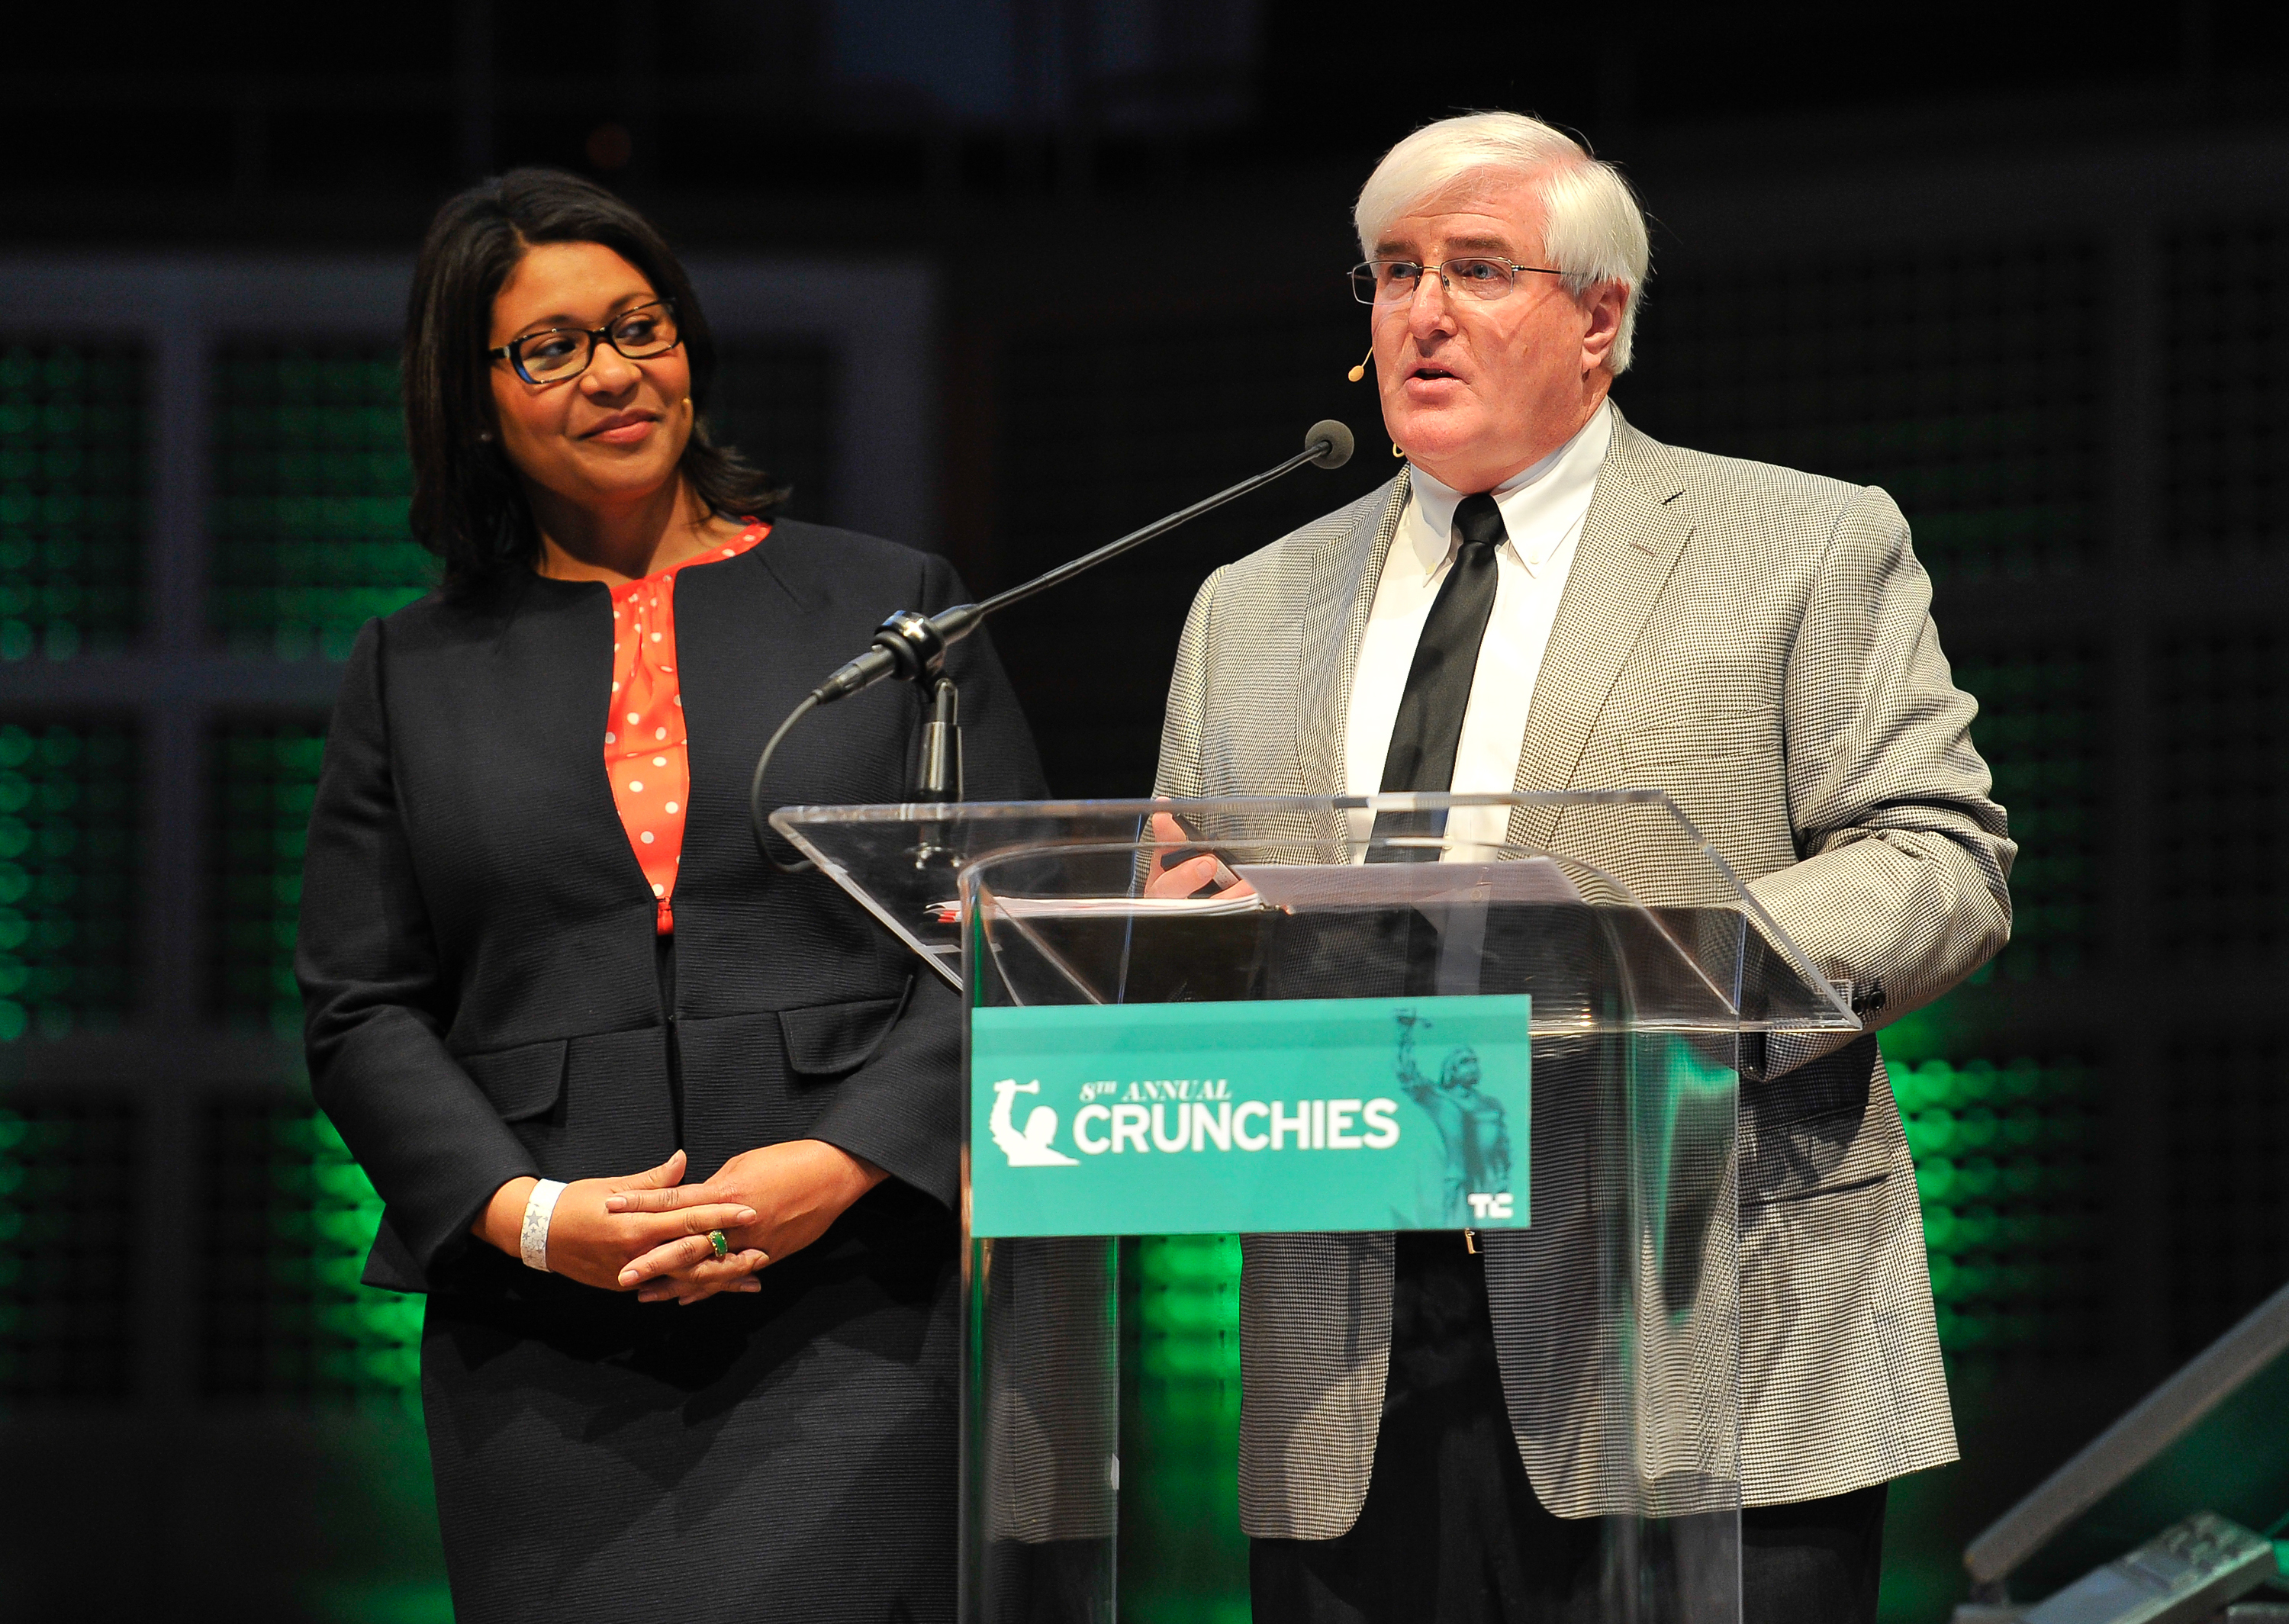 London Breed (left) at the 2015 Crunchies. Getty